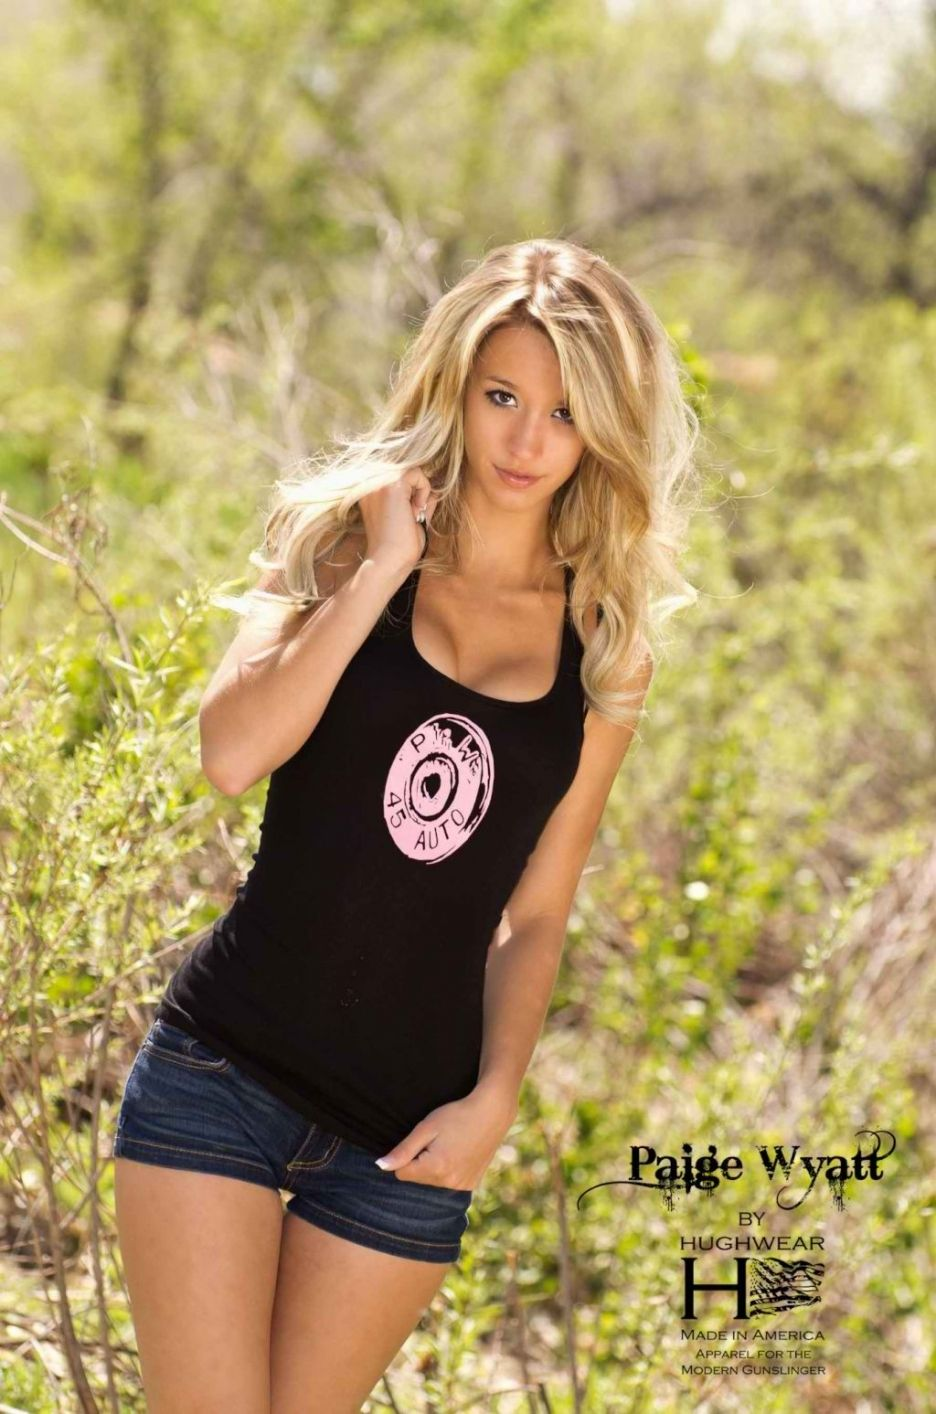 Paige Wyatt Pictures. Hotness Rating = 9.21/10